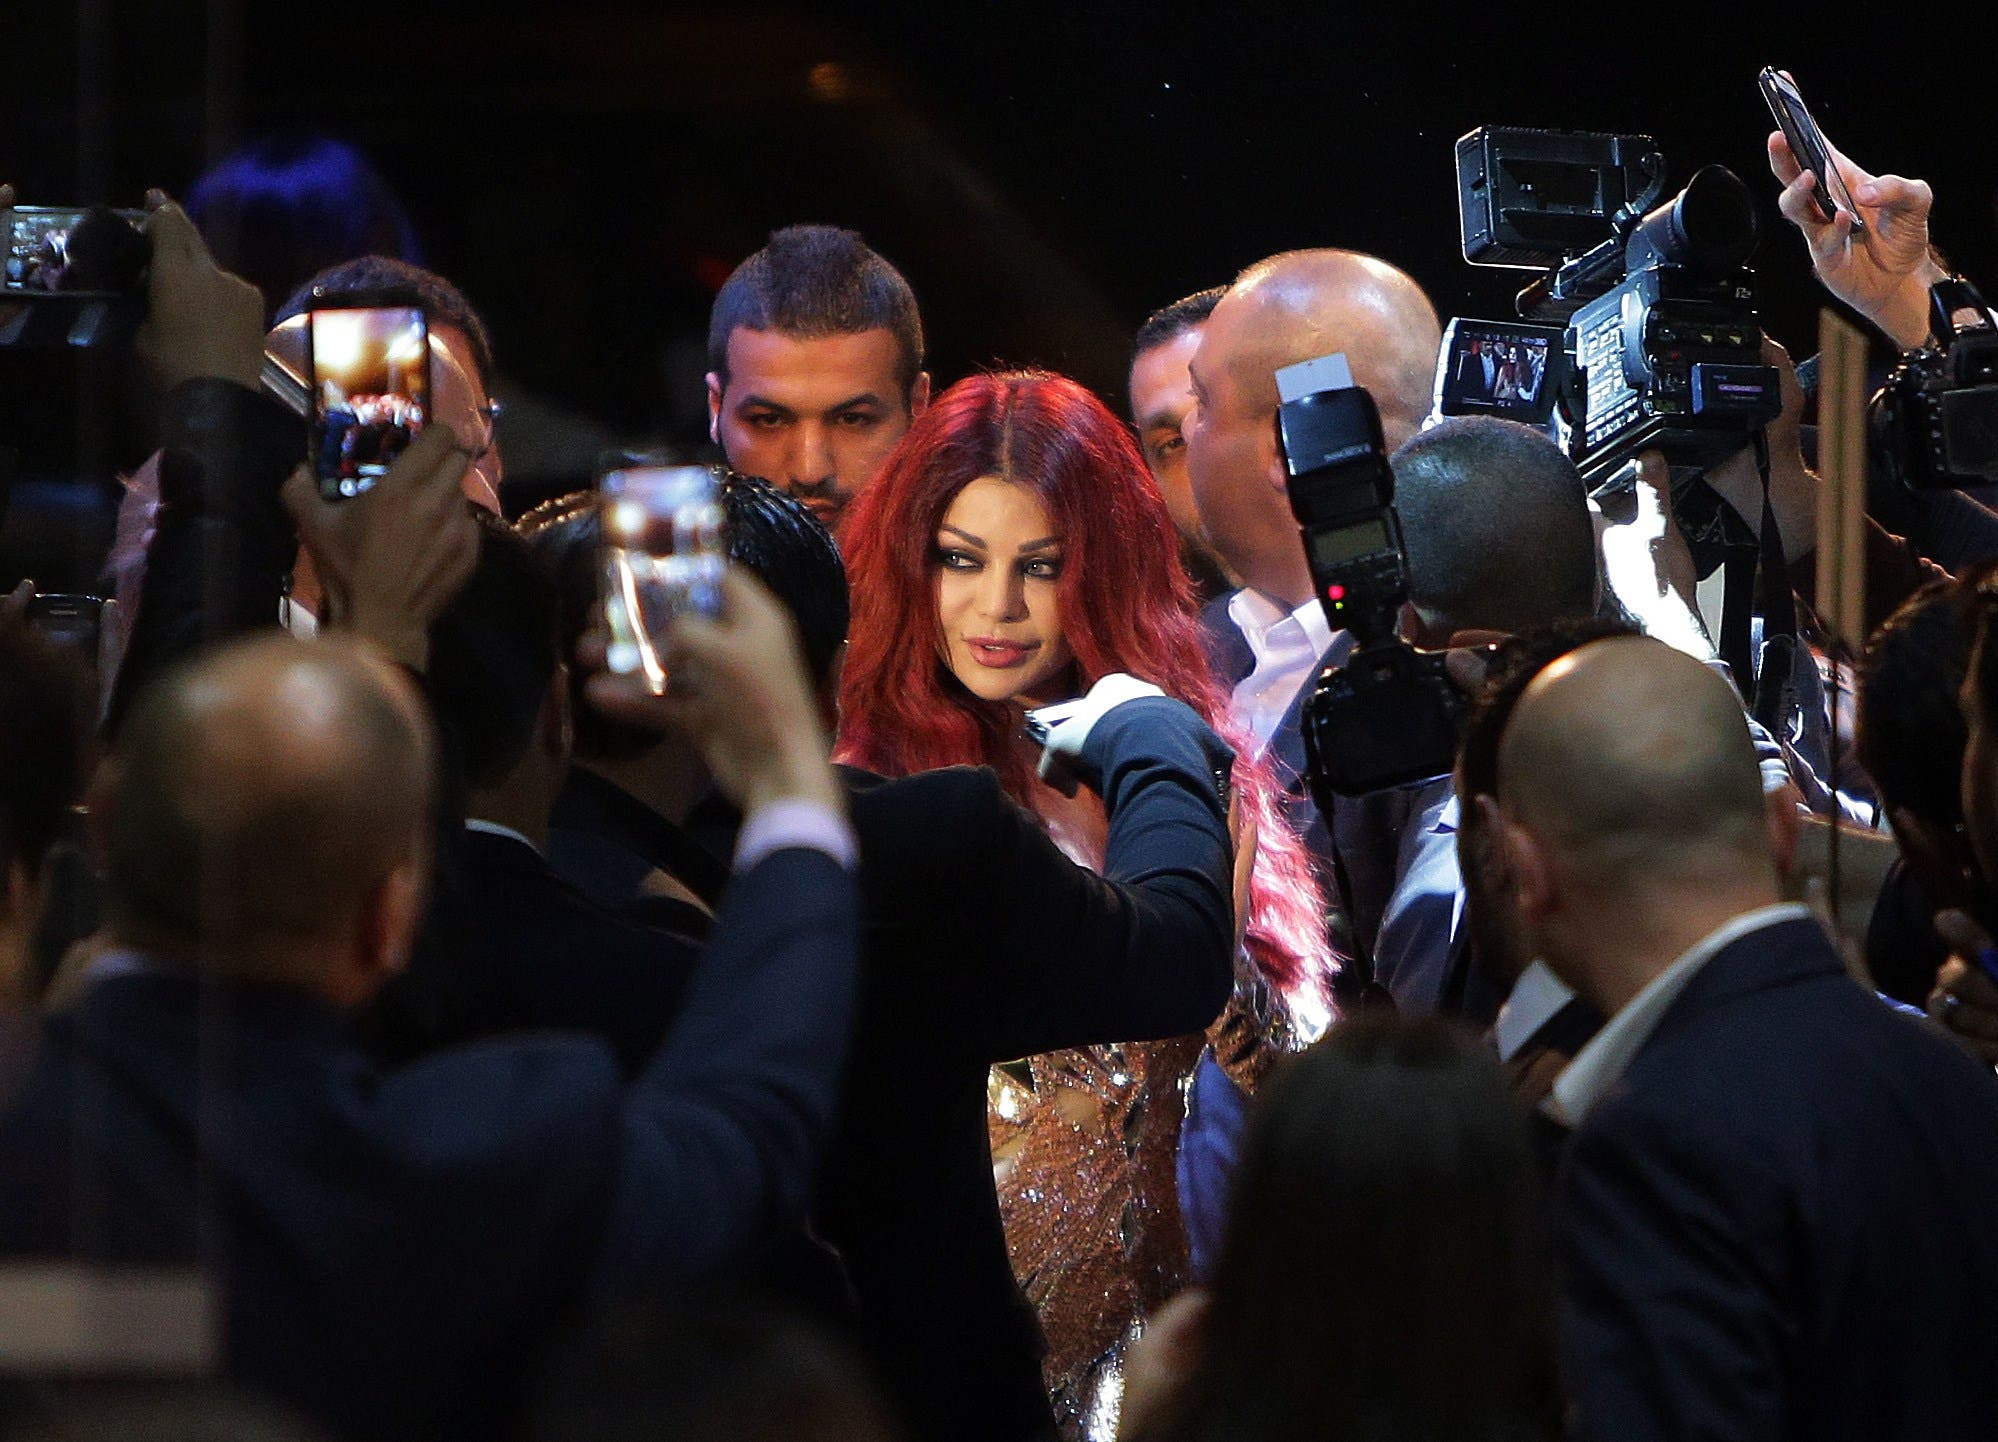 A file picture taken on April 8, 2014 shows Lebanese pop star Haifa Wehbe arriving for the Premiere of her movie 'Halawet Rooh' at a movie theatre in the town of Dbayeh, North of Beirut. AFP